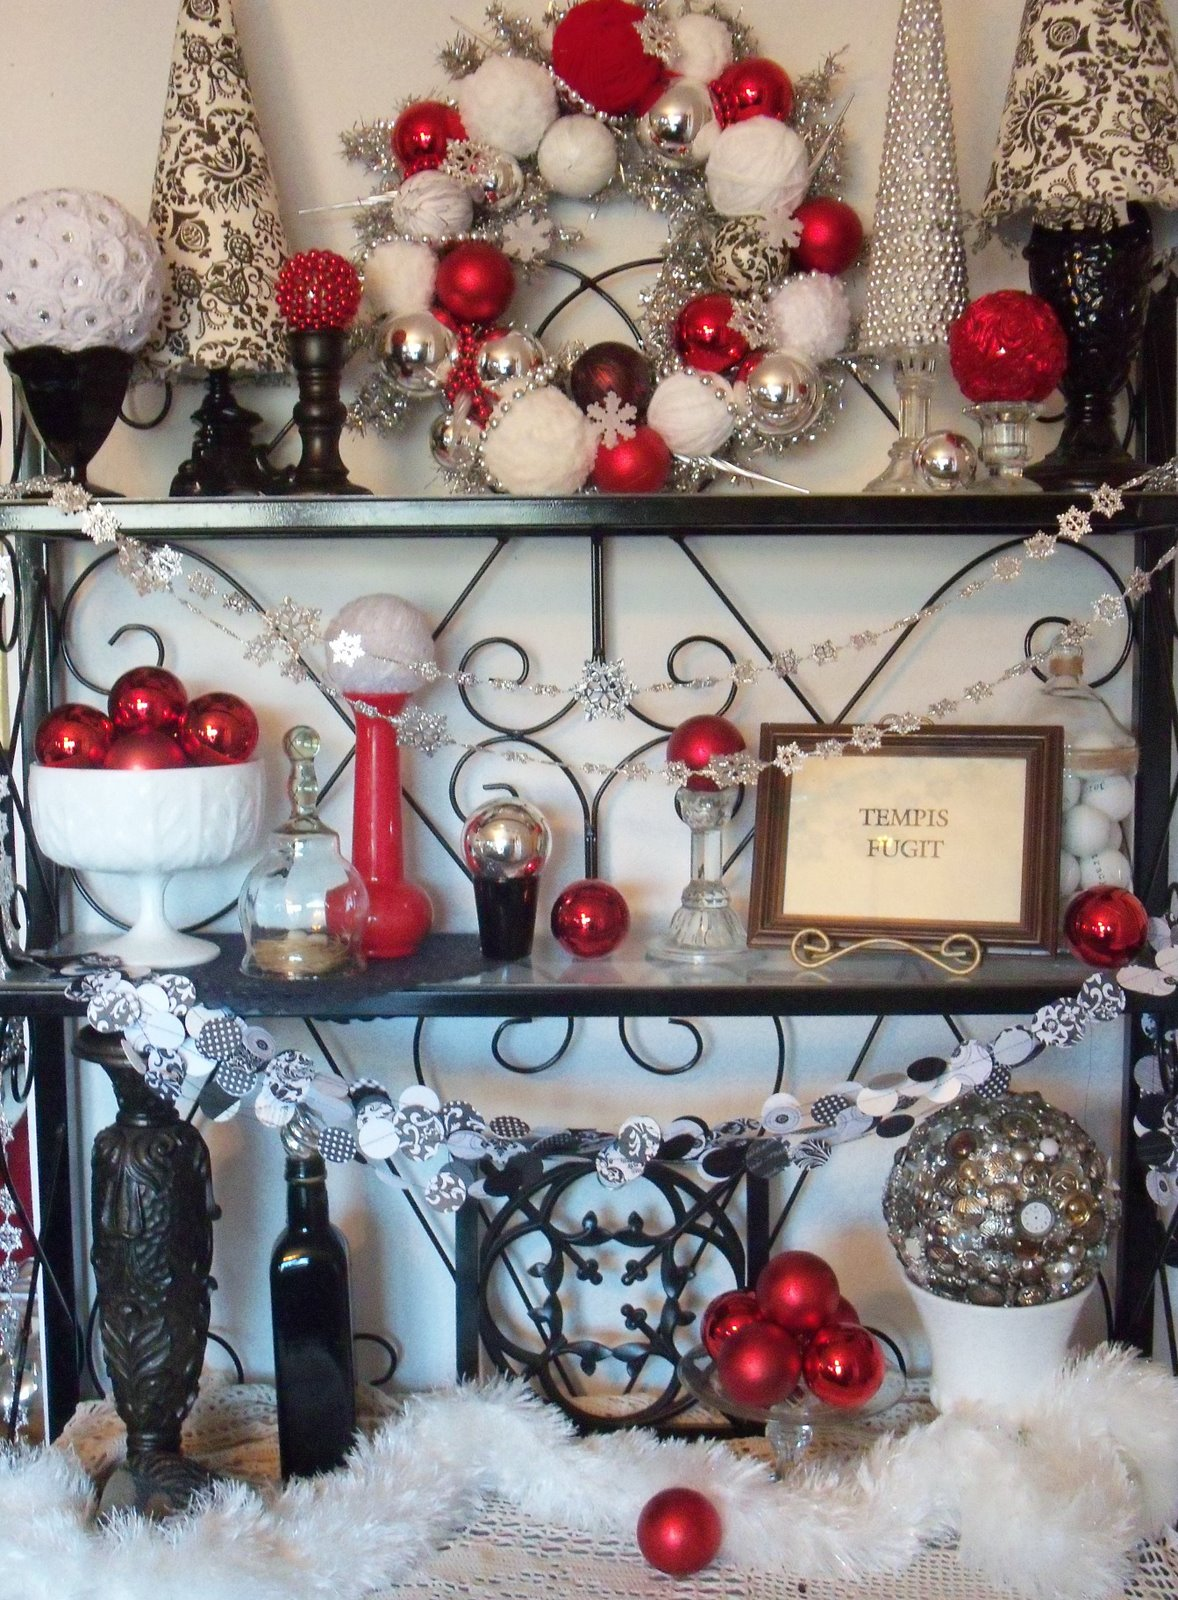 Black white christmas decorations for trees - Black And White And Red Christmas